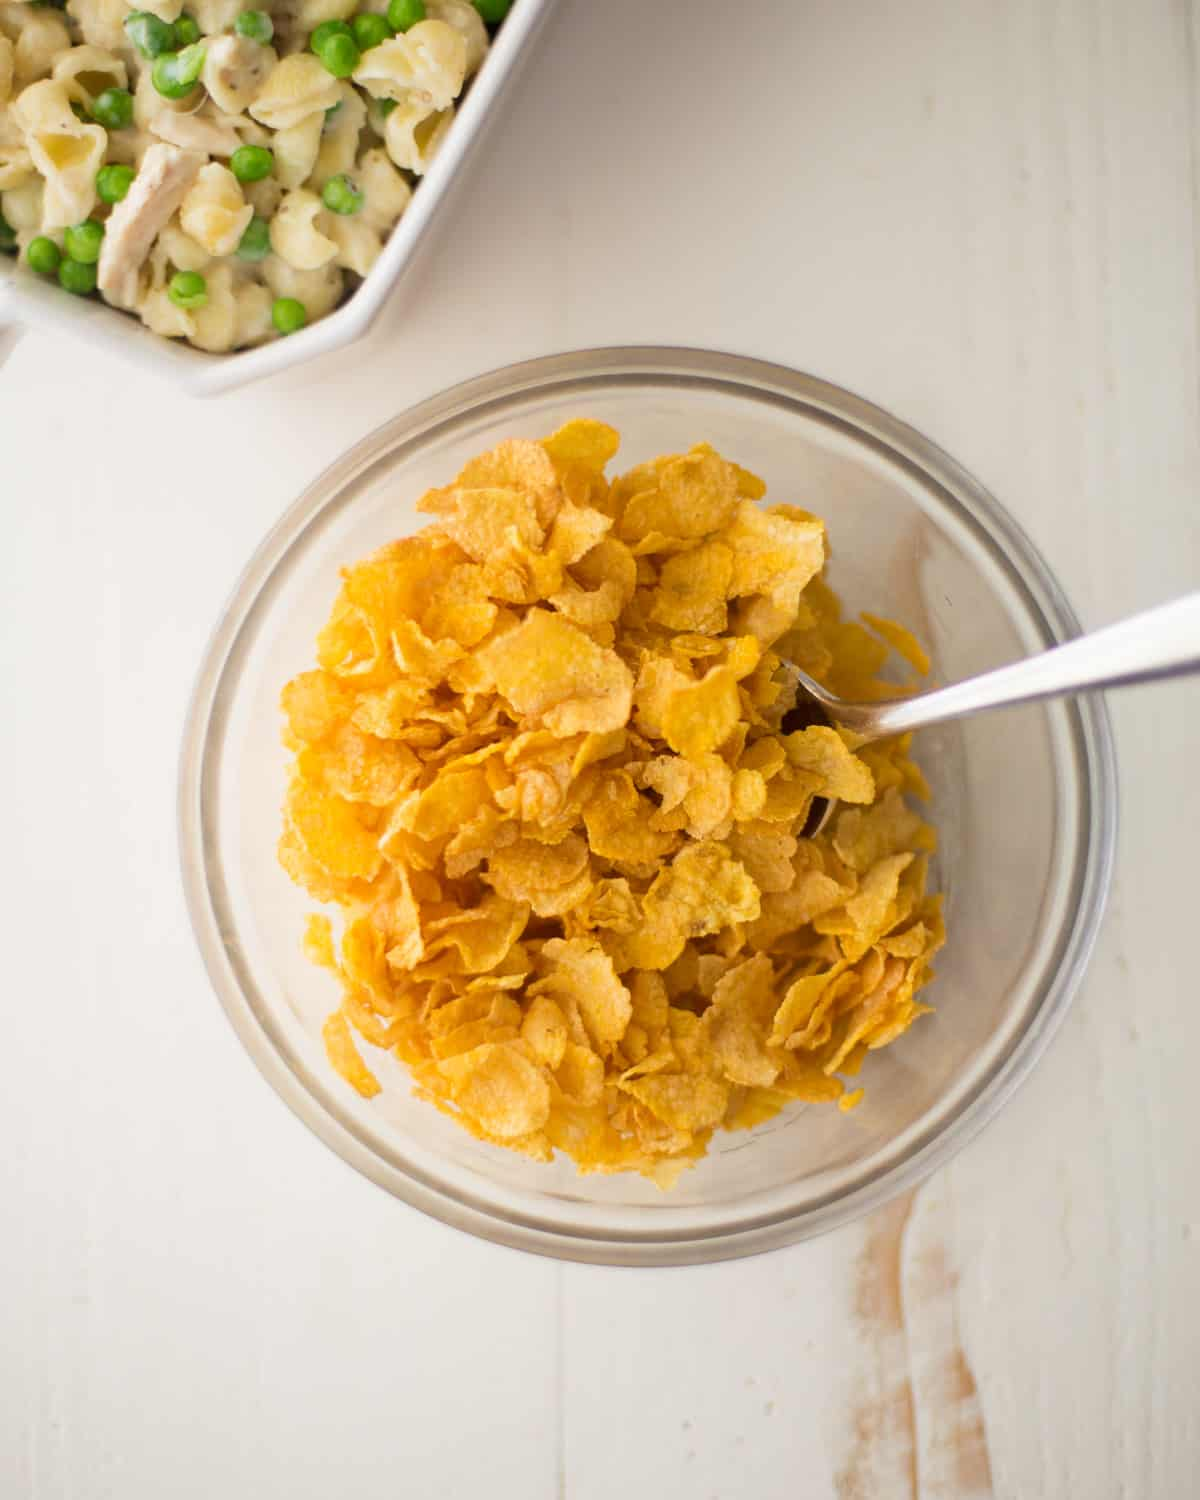 cornflakes in a glass bowl